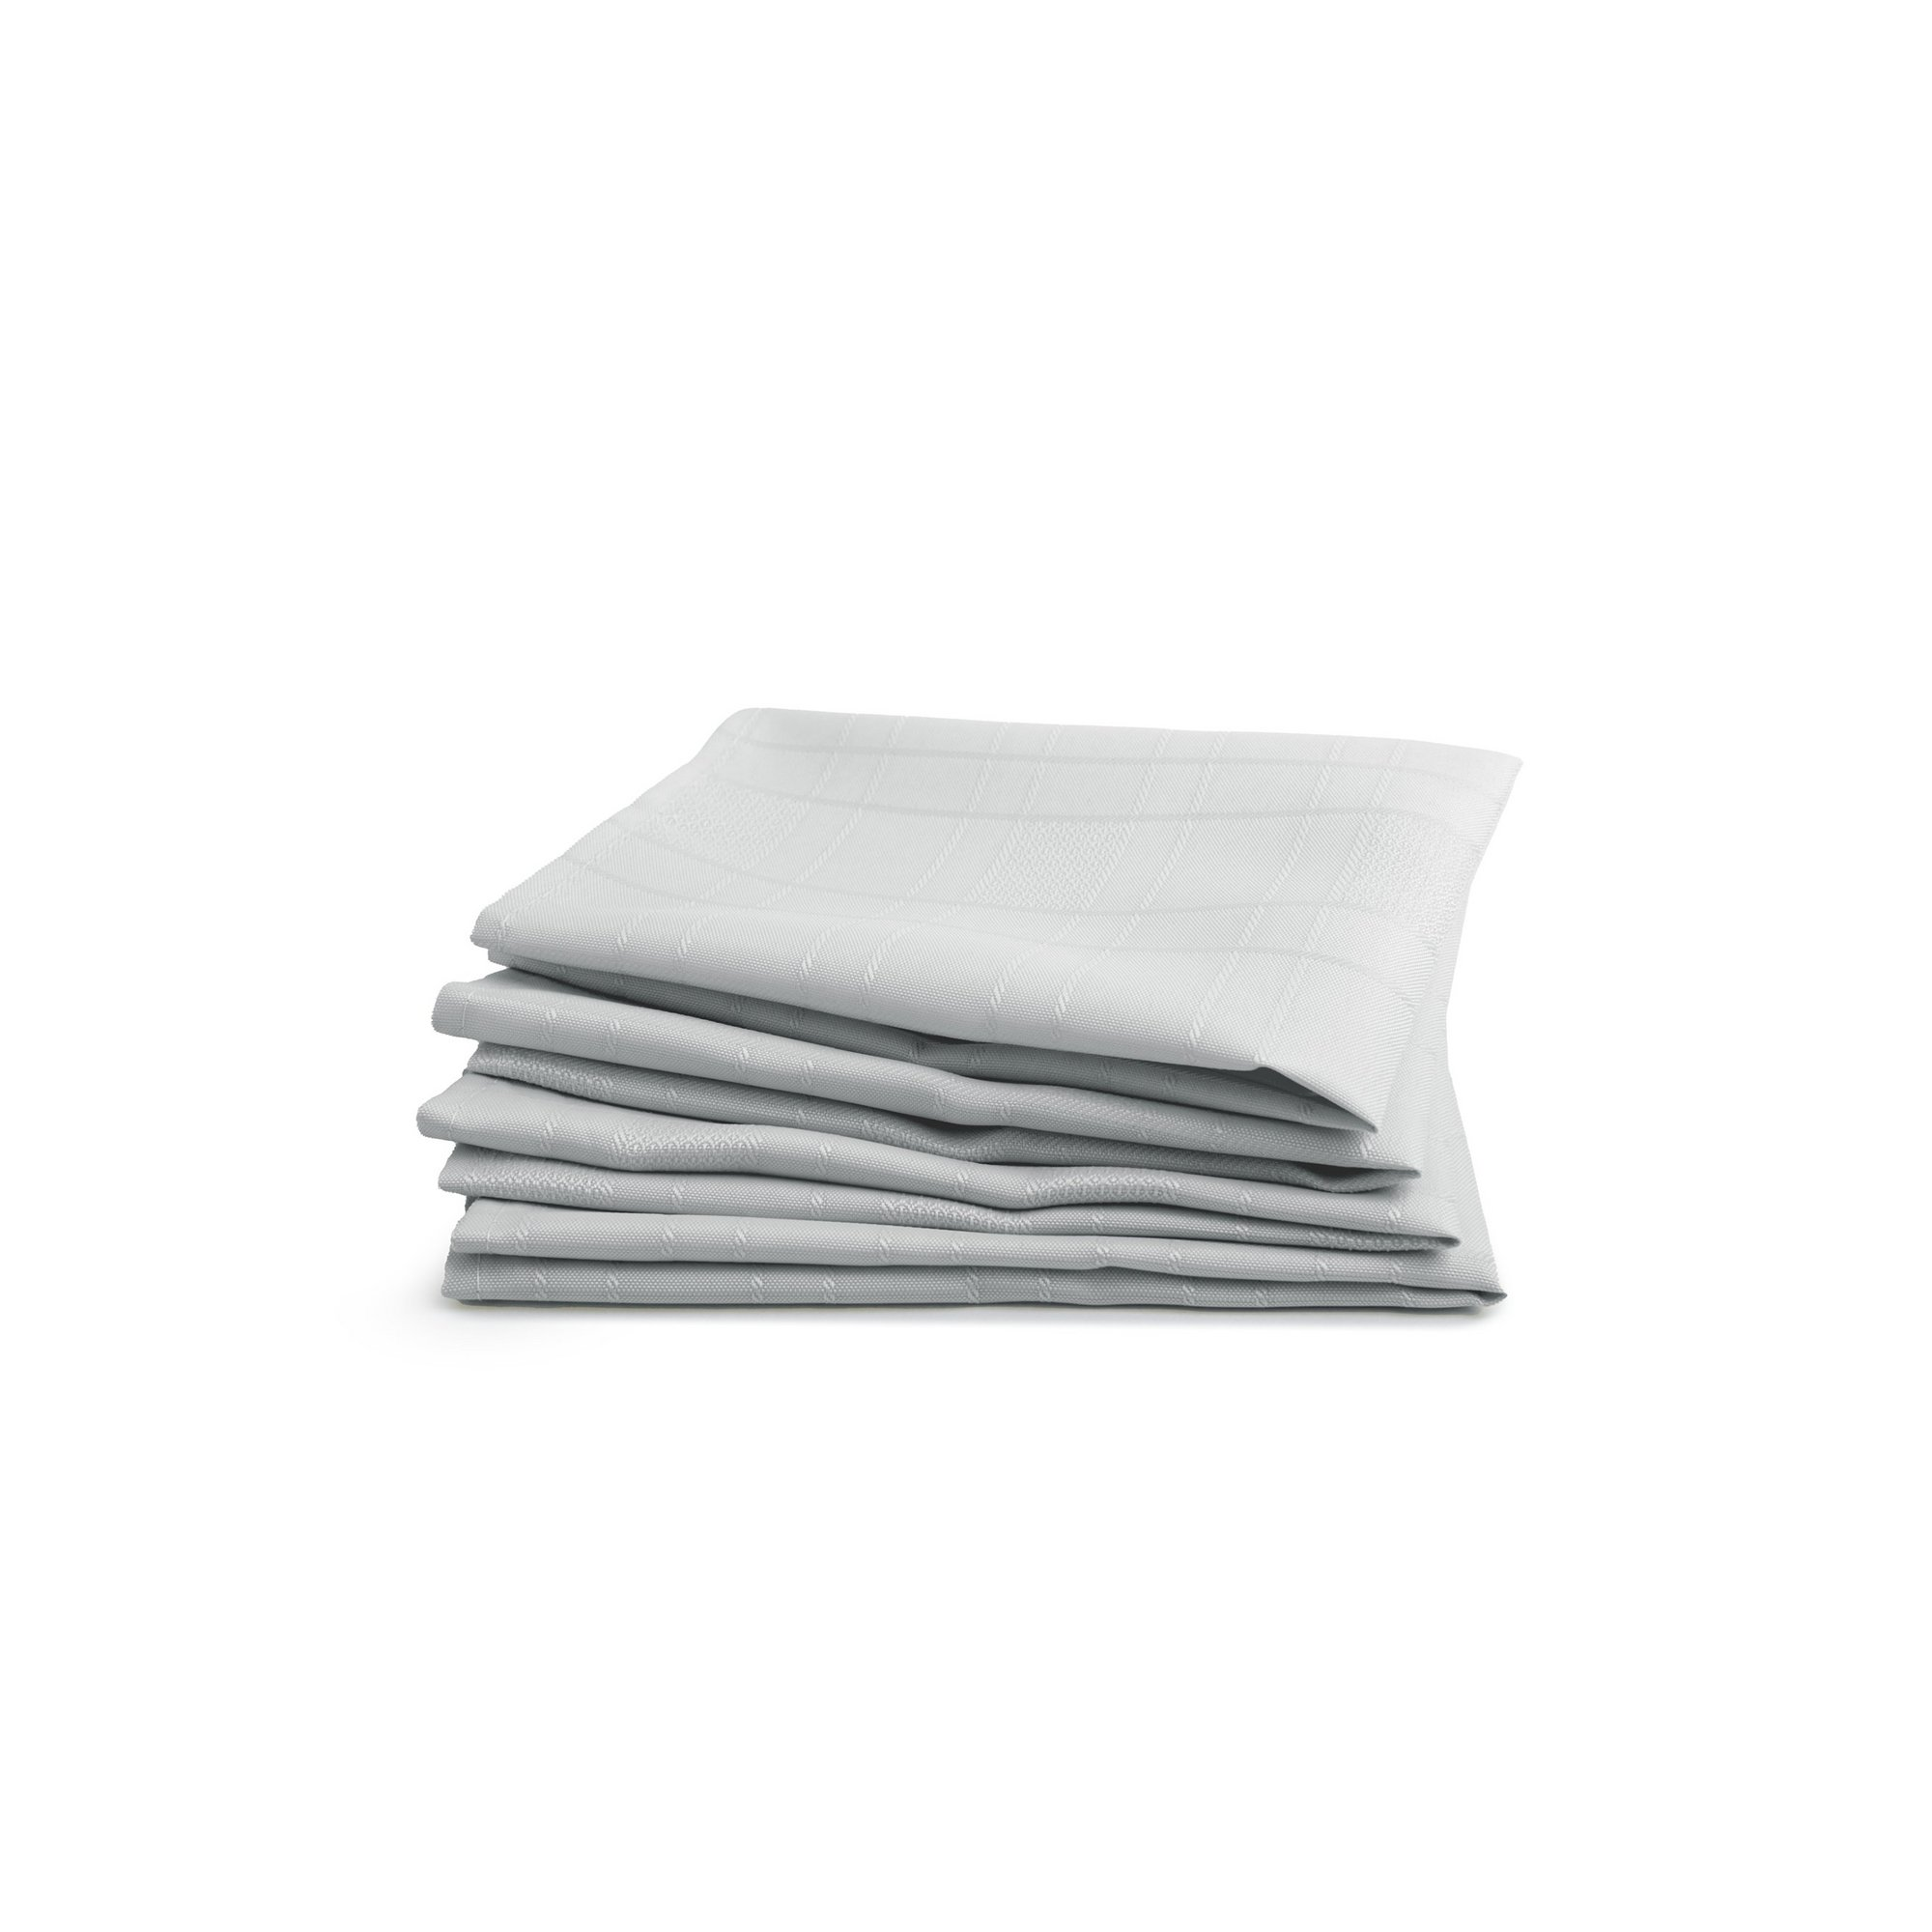 Image of Pack of 4 Chequers Jacquard Napkins